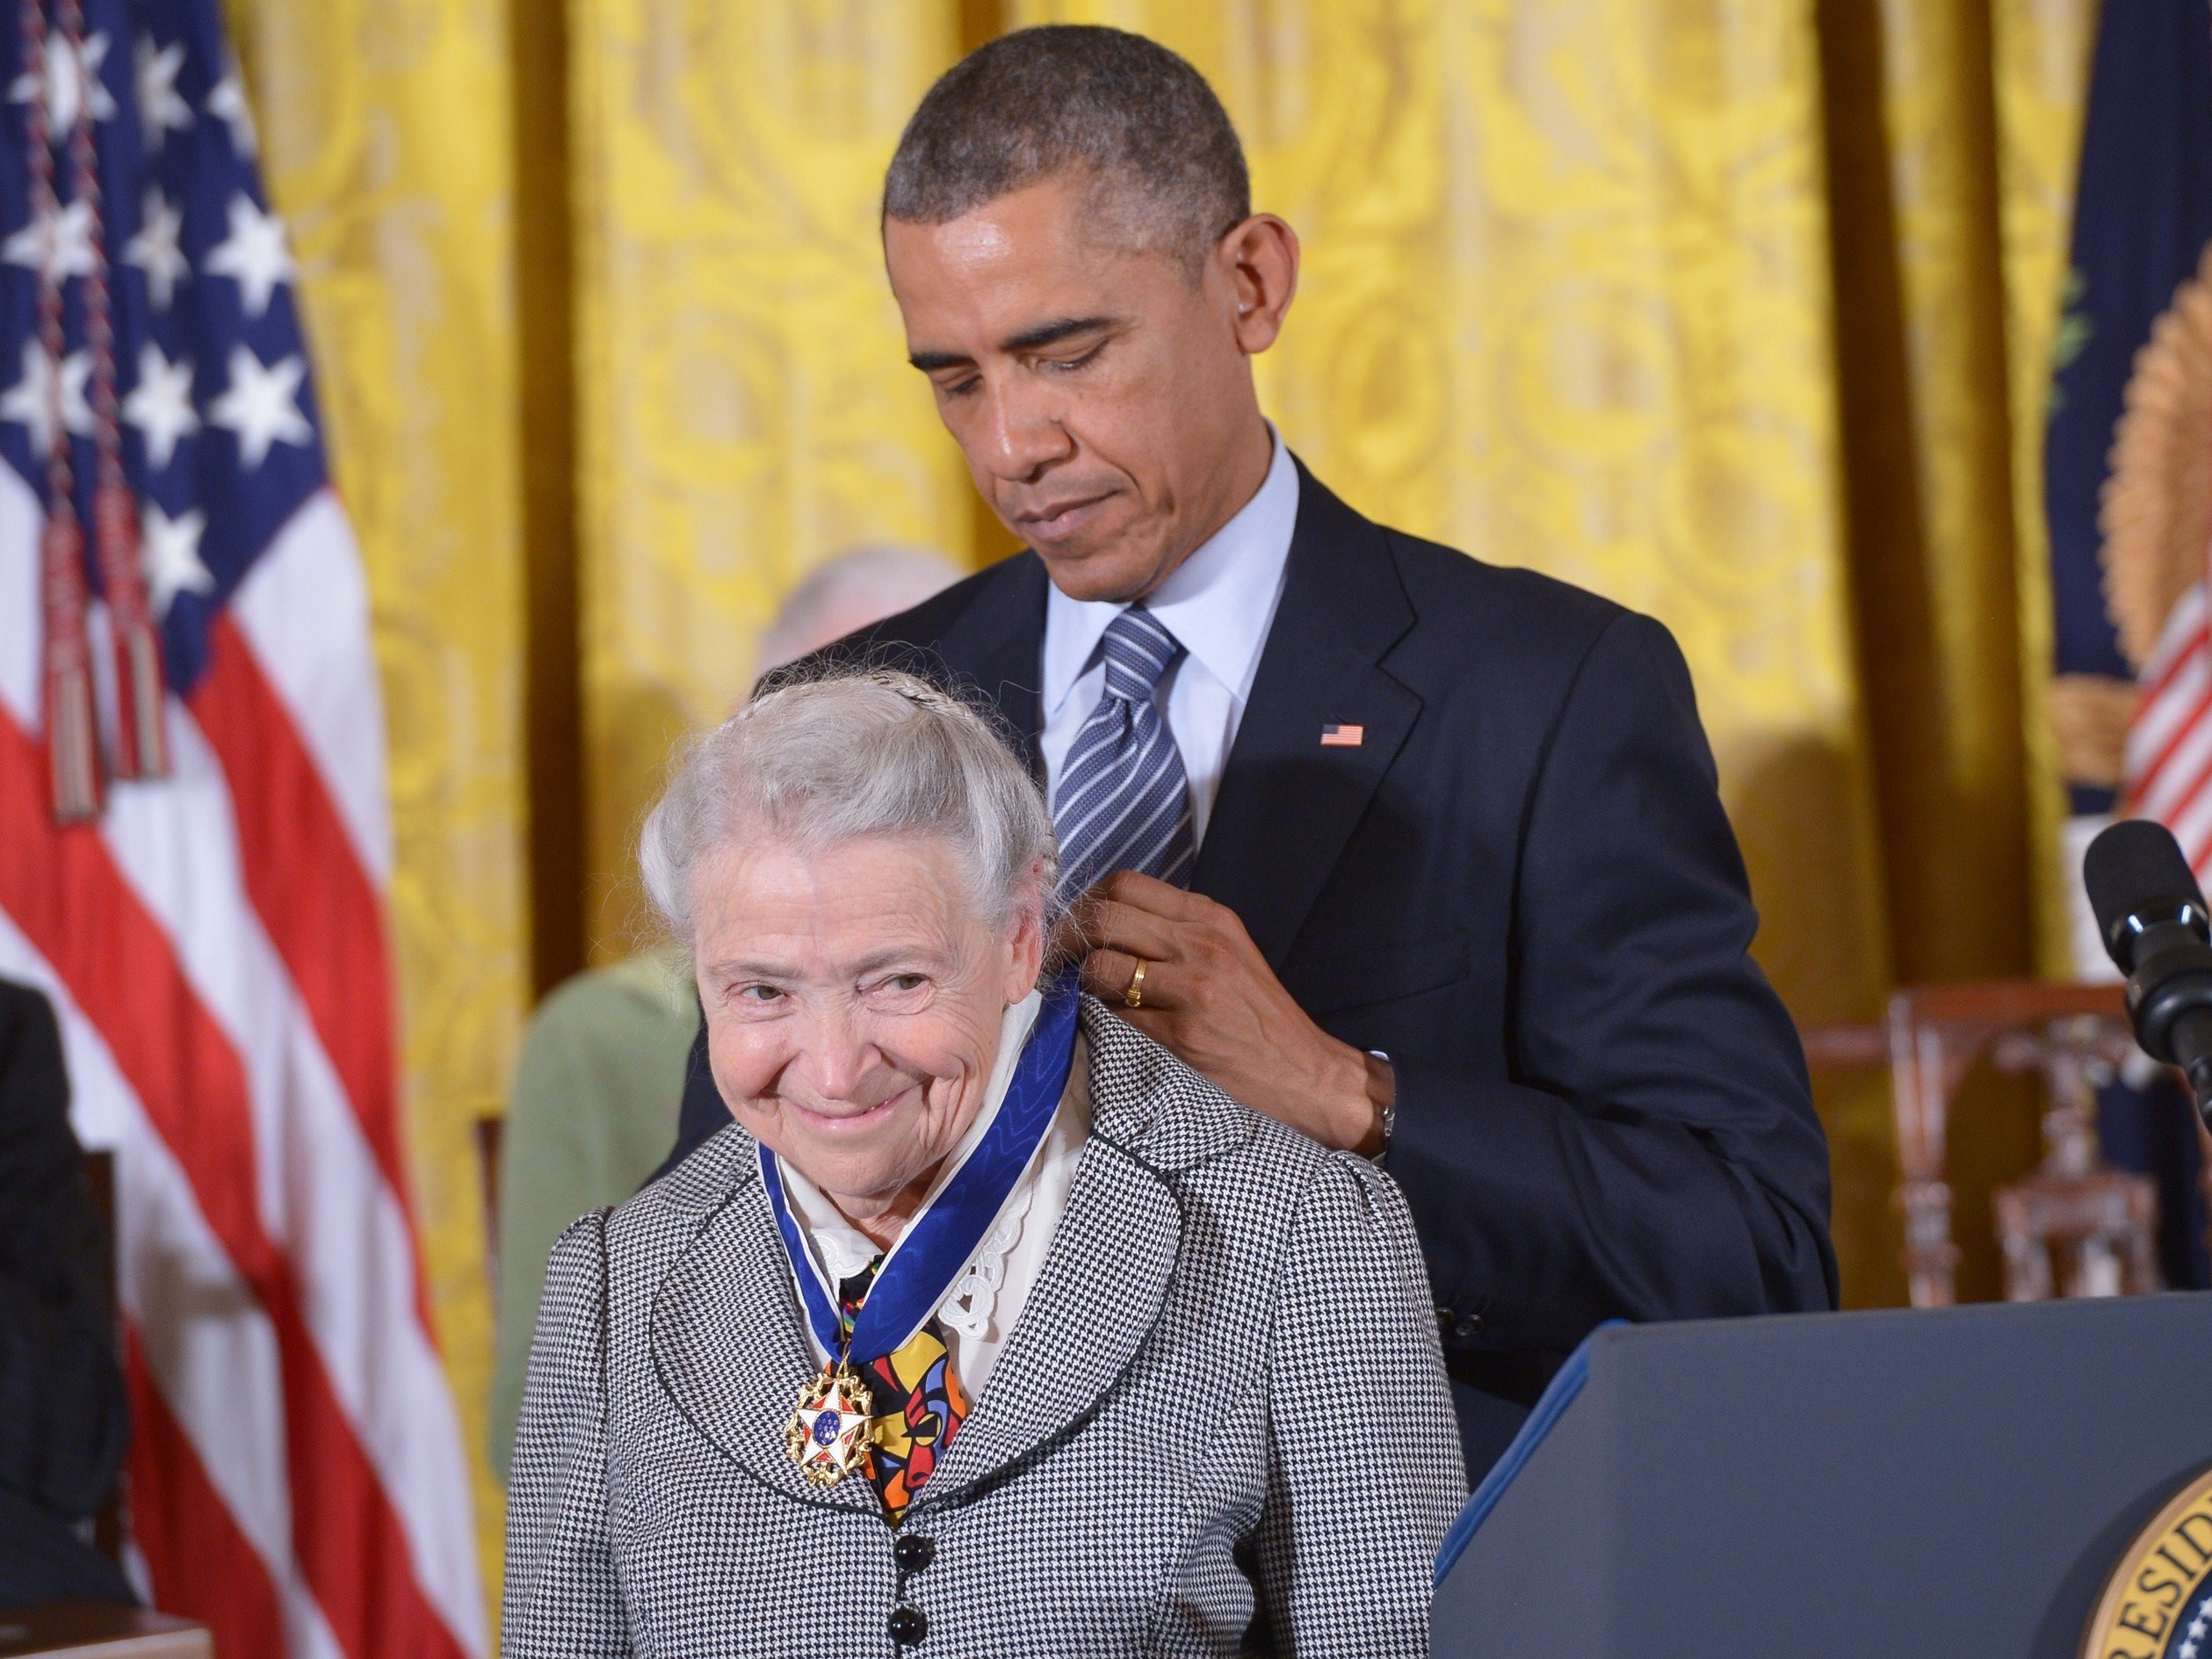 President Barack Obama presents the Presidential Medal of Freedom, the highest civilian honor in the U.S., to Mildred Dresselhaus at the White House in 2014. (Mandel Ngan/AFP/Getty Images)